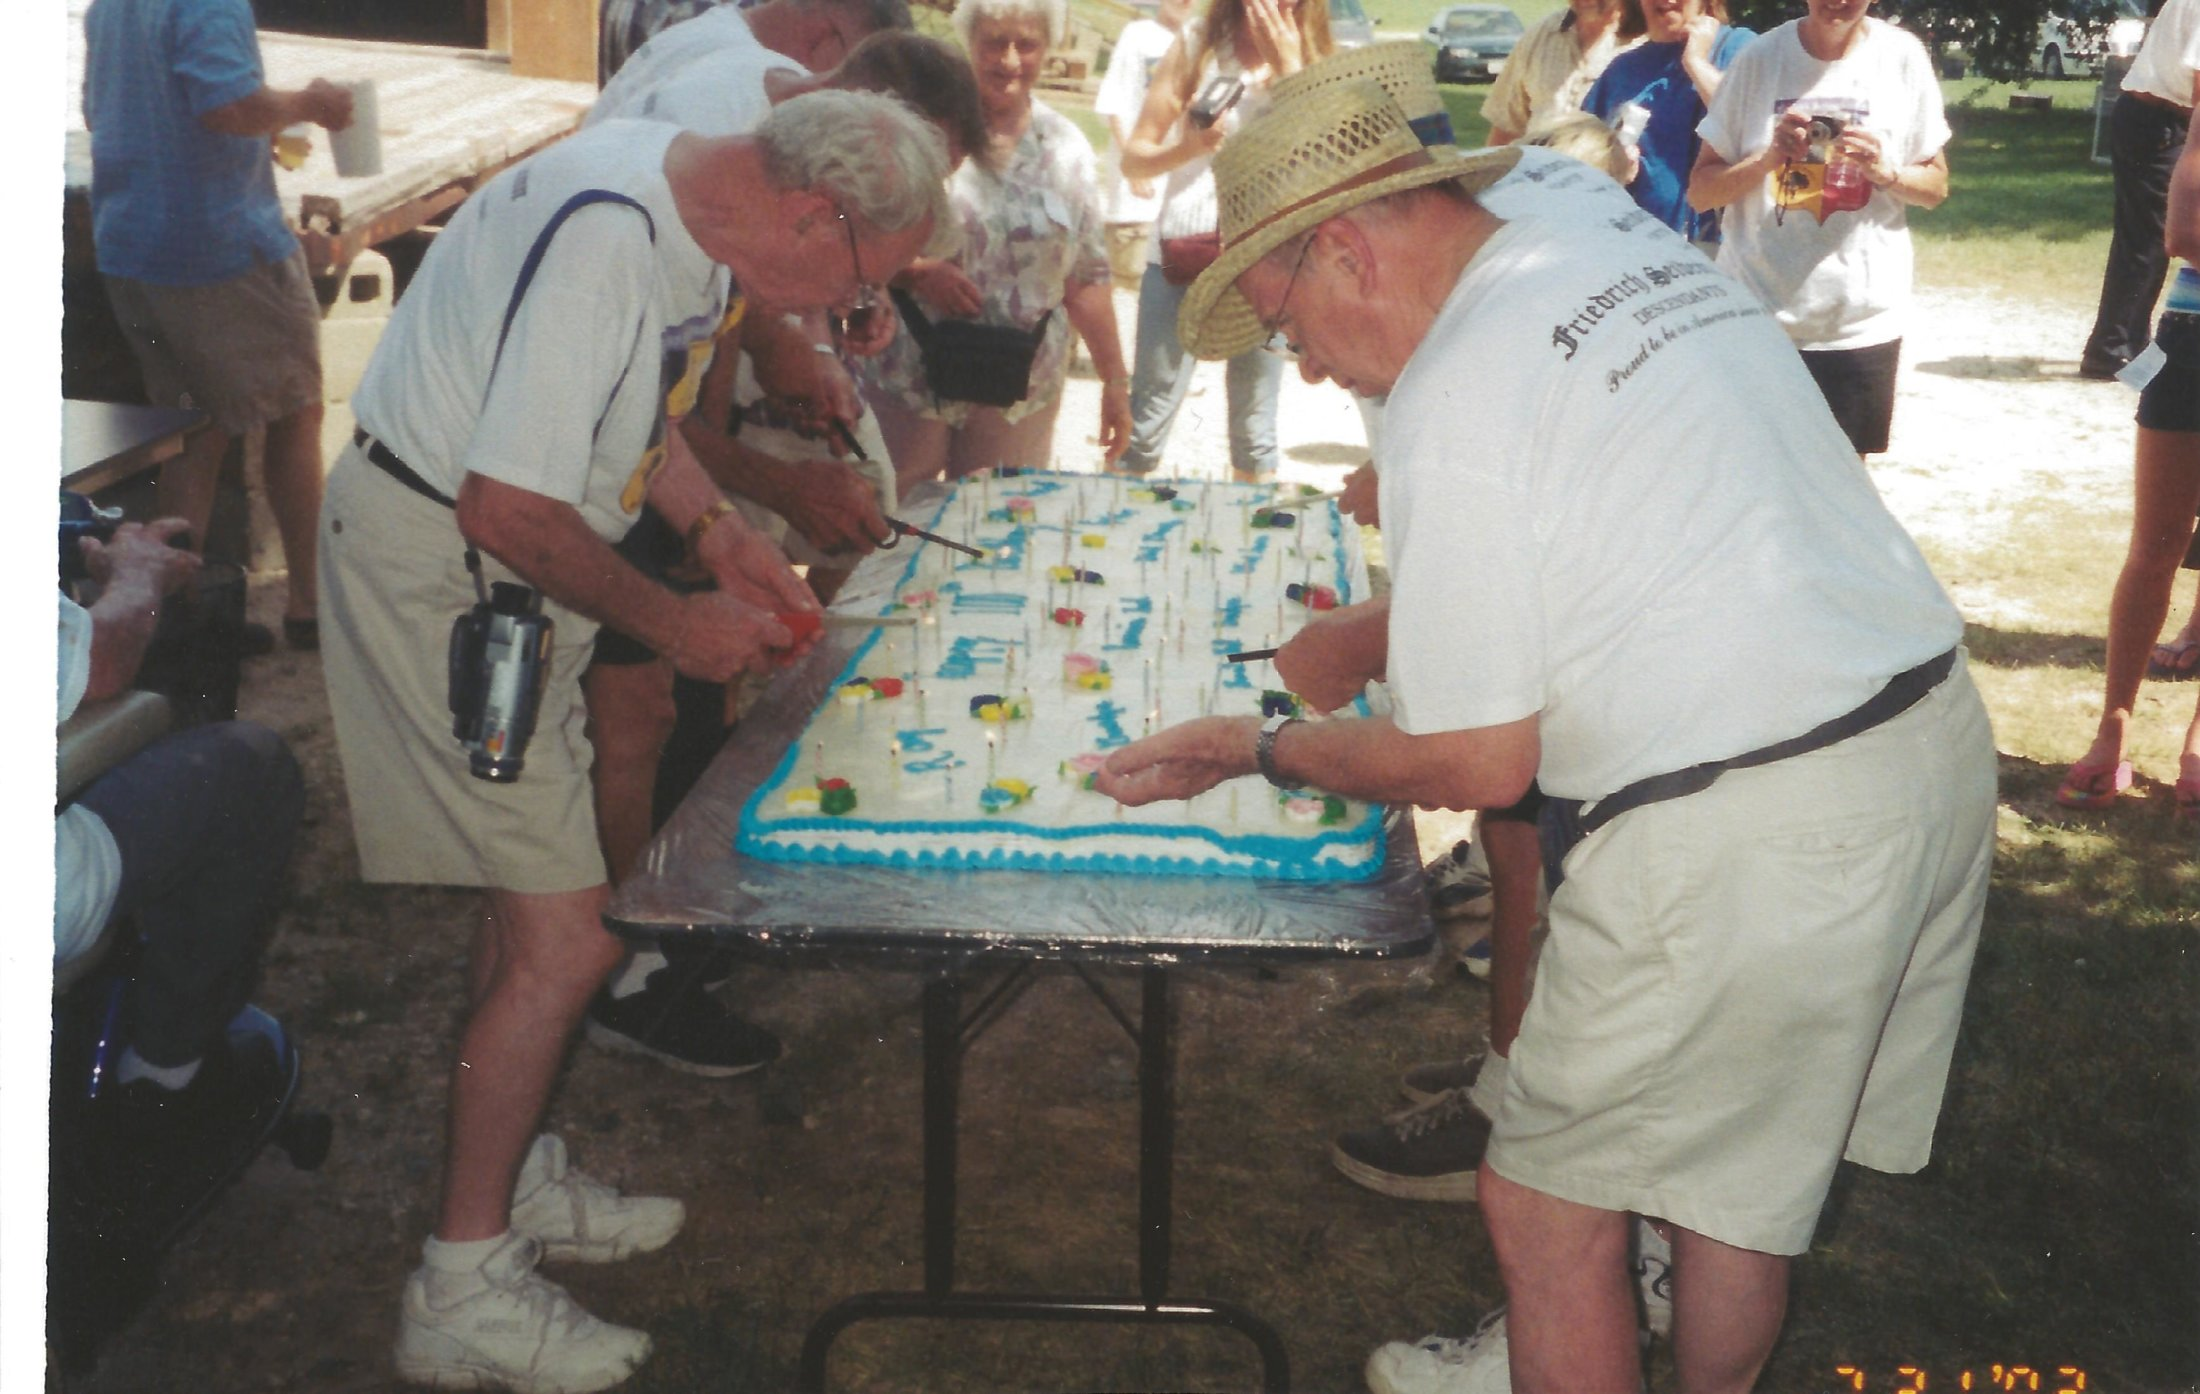 Ray's sons lighting the 100 Candles on Ray's Birthday Cake